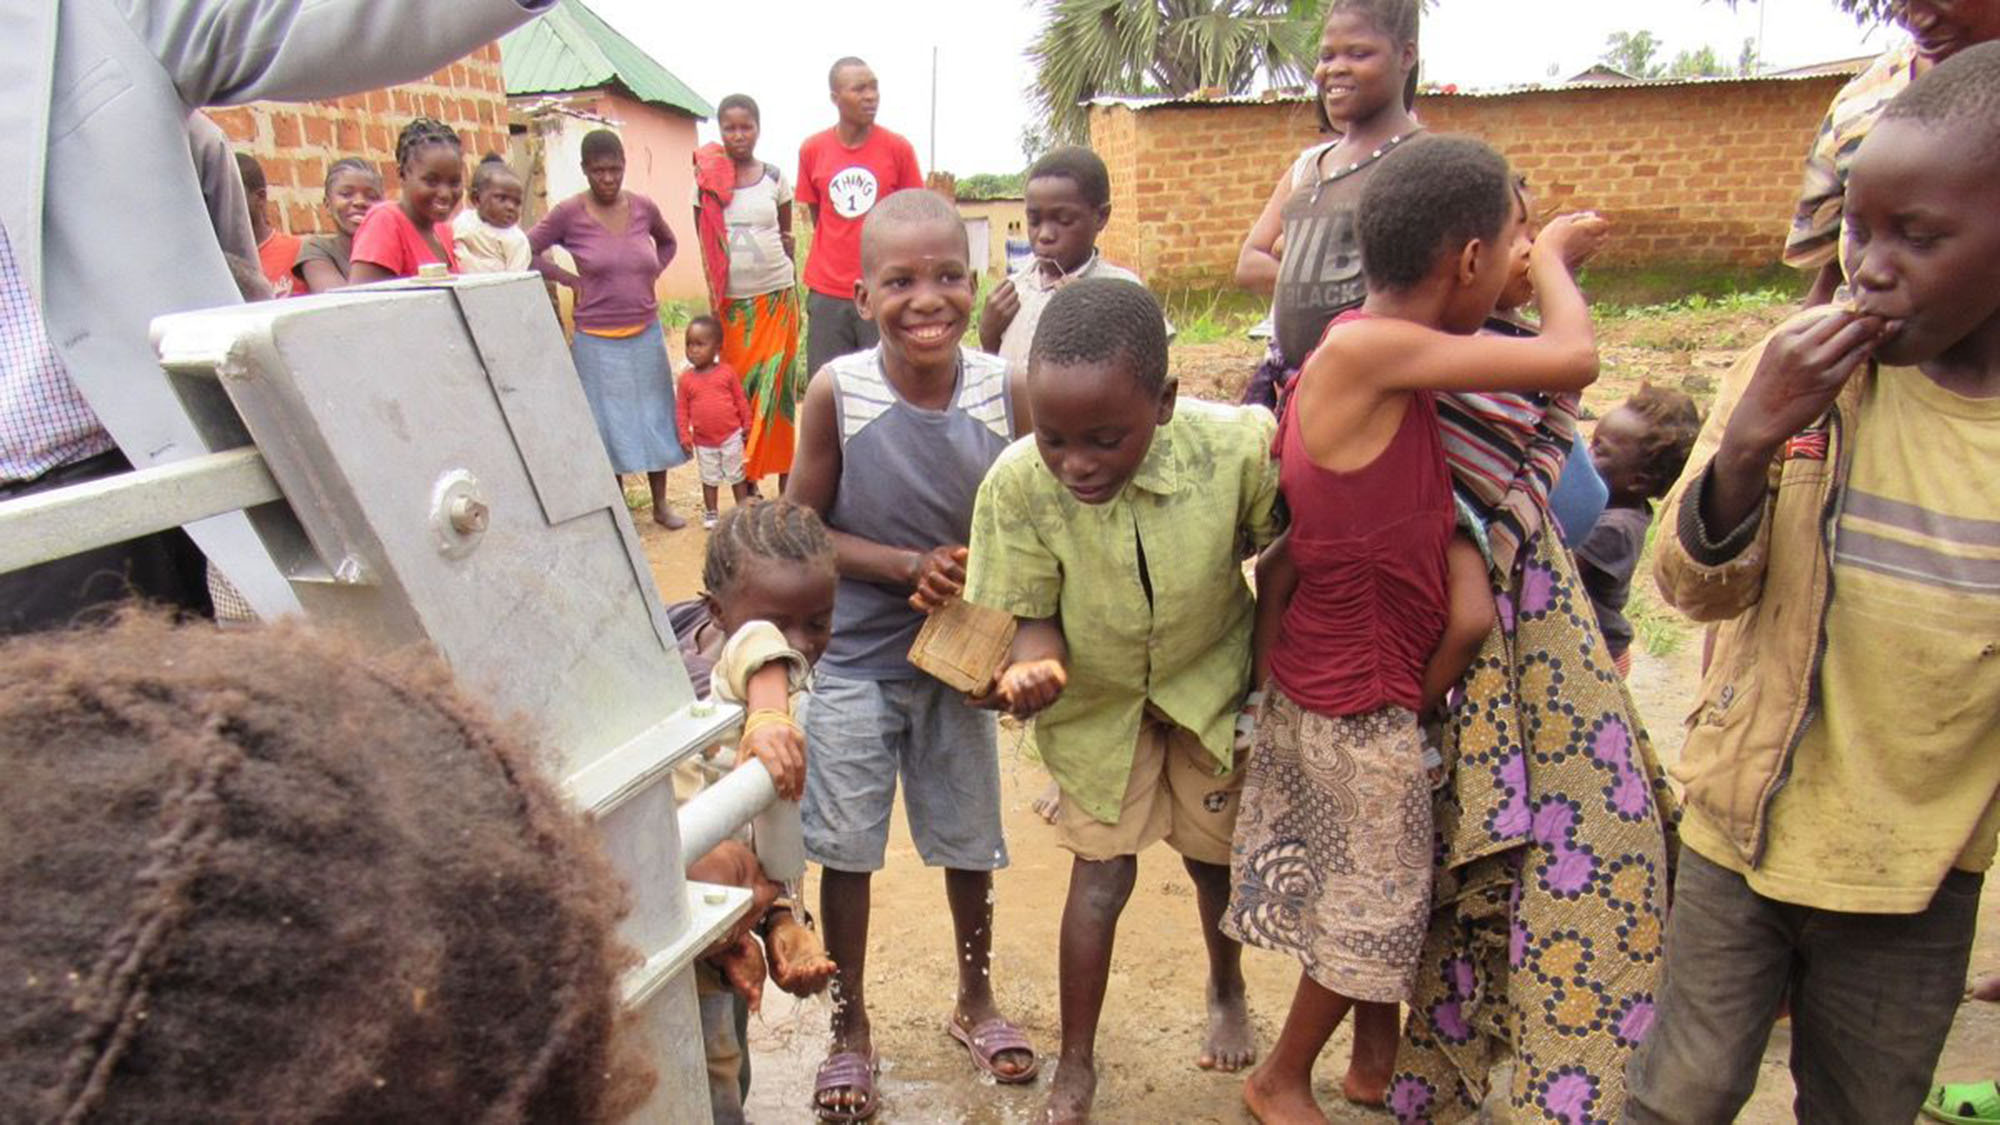 Children at a water pump